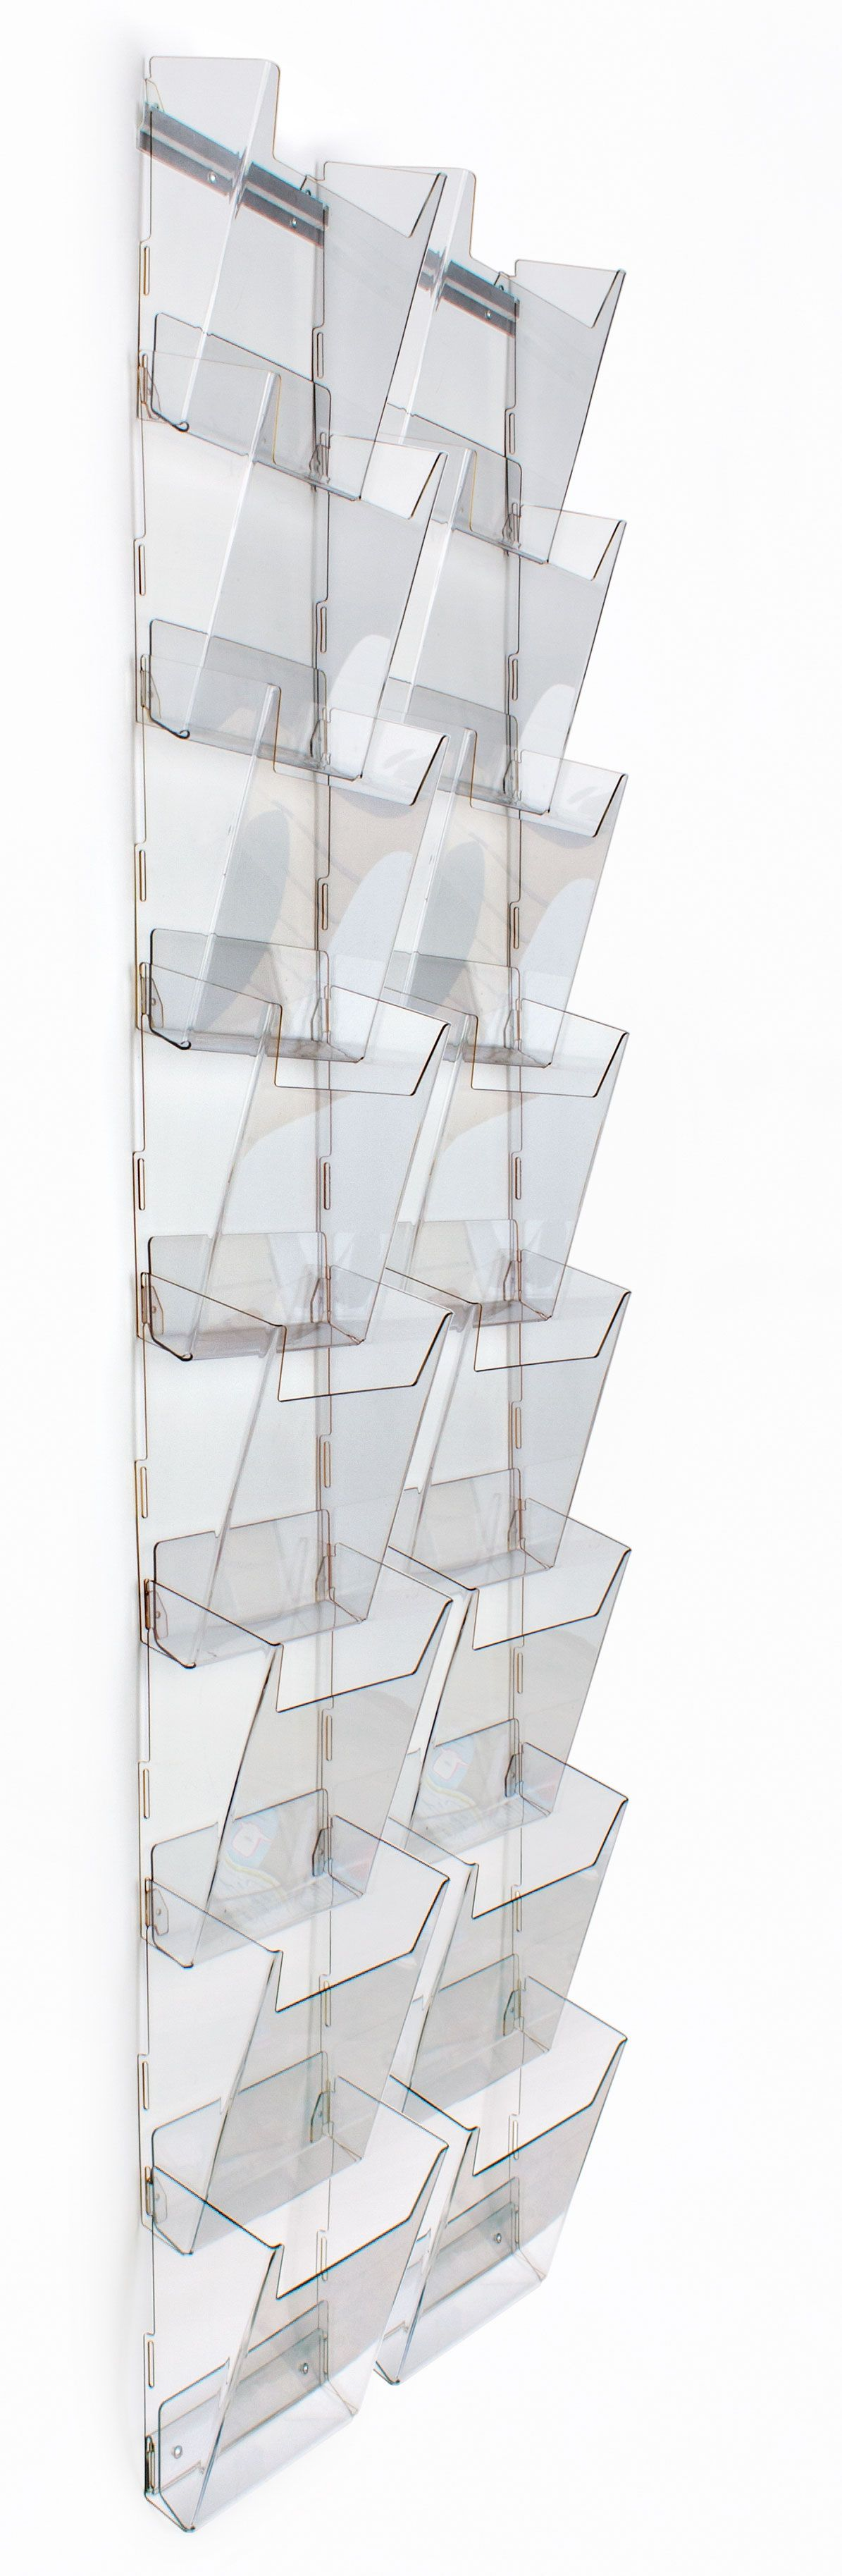 acrylic literature rack holder detail mounted clear with product pockets display brochure wall hanging magazine adjustable